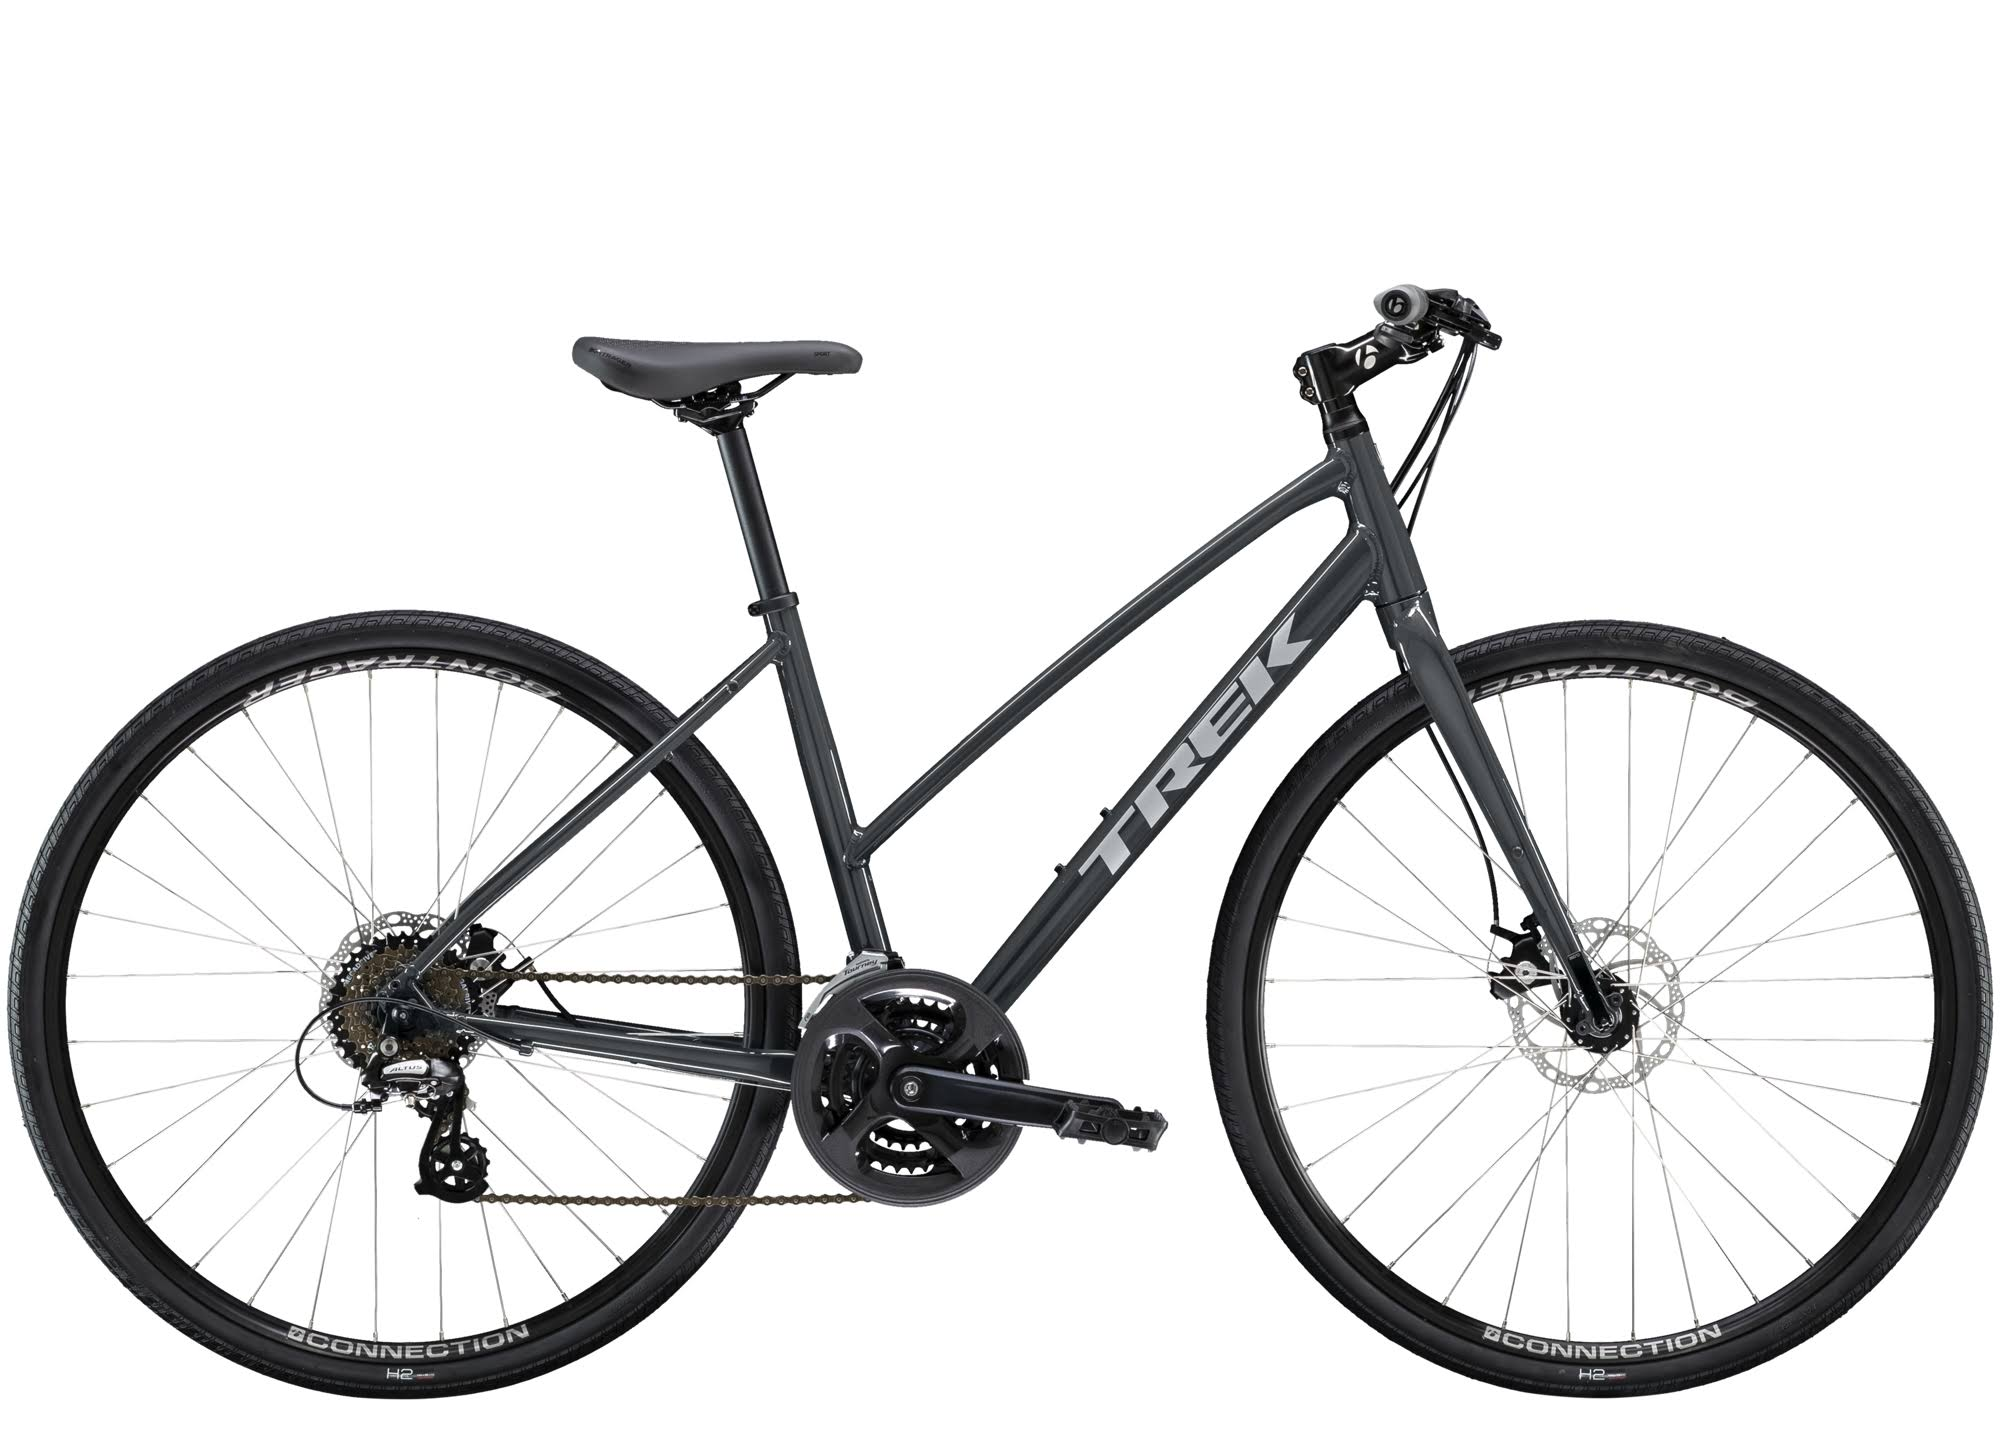 Trek FX 1 Stagger Disc Road Bike - Solid Charcoal